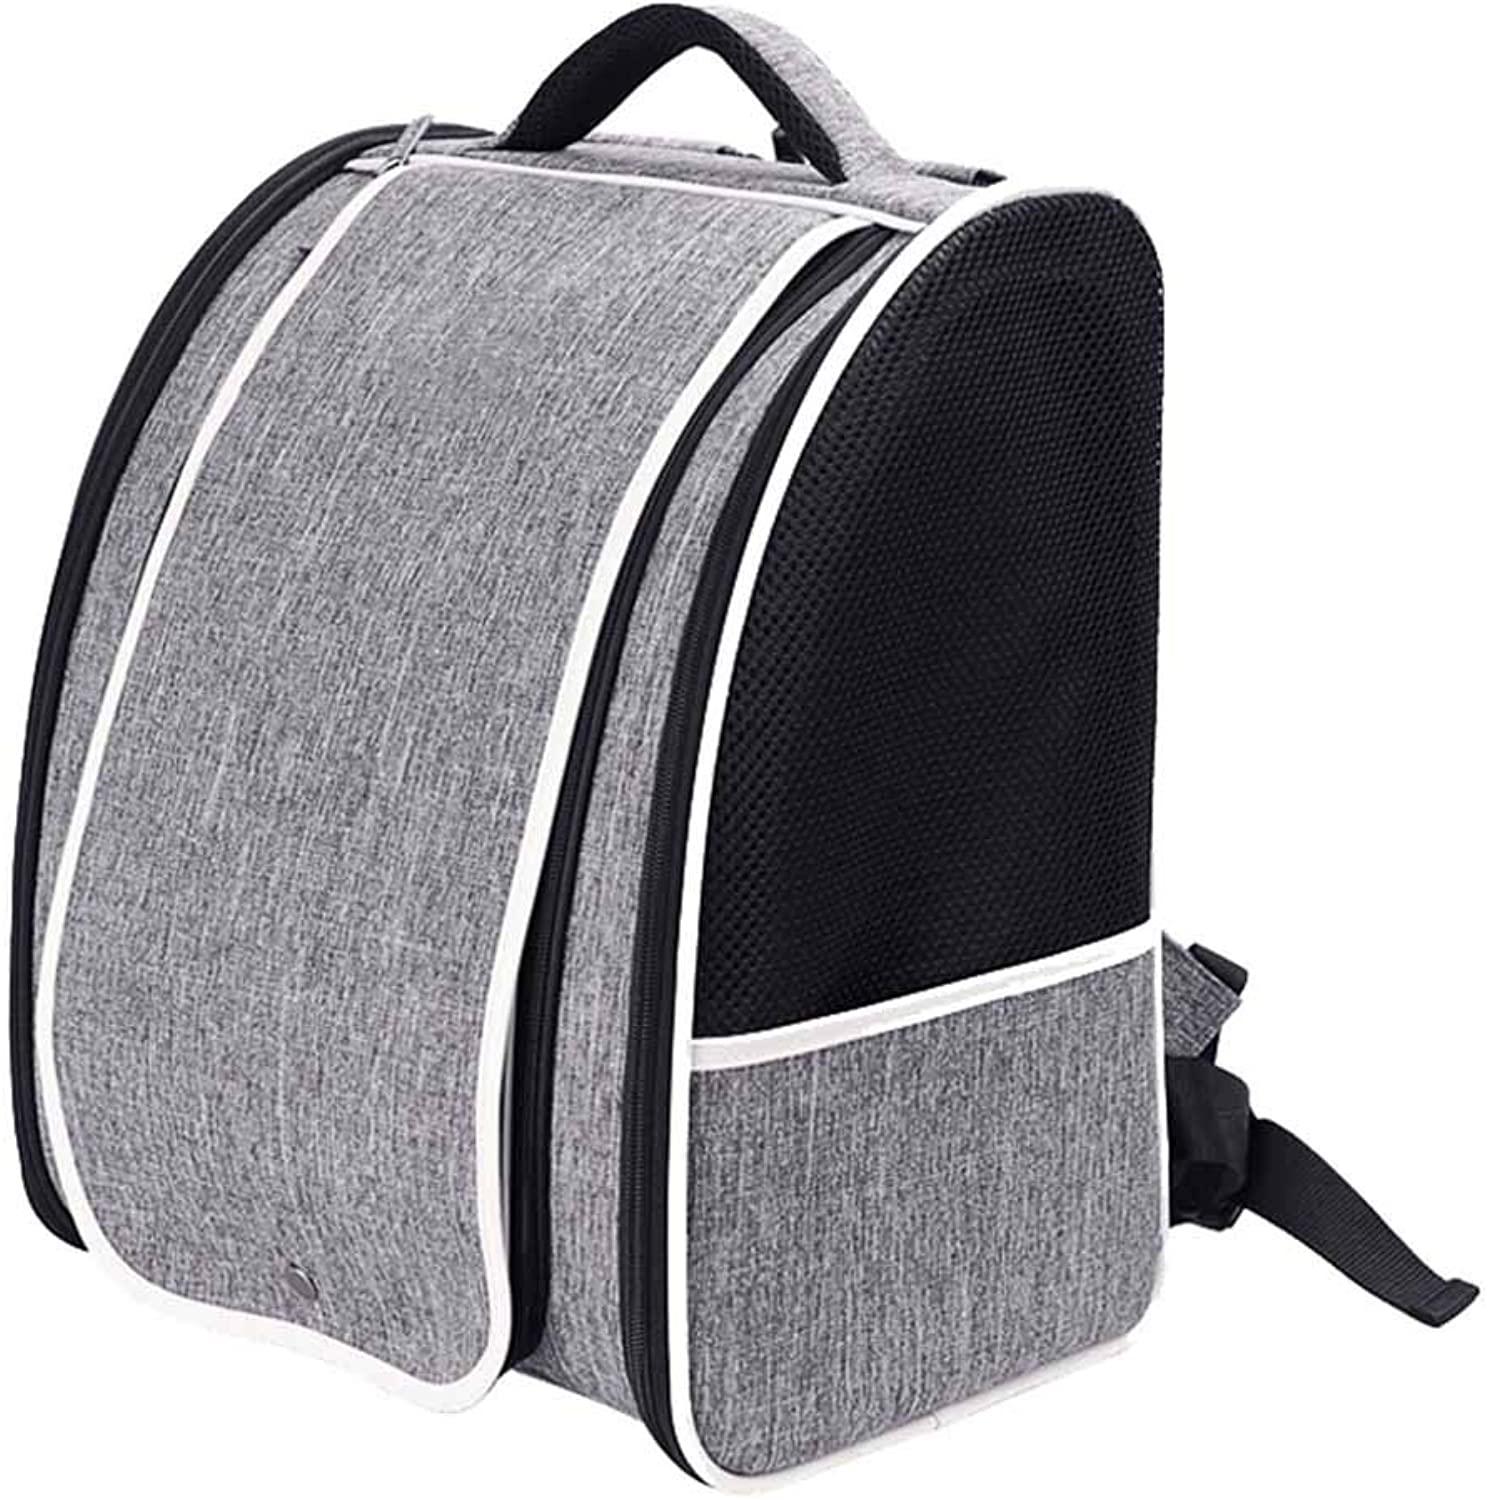 NIANXINAN Breathable Double Shoulder Travel Portable Cat Dog Carrier Pet Backpack